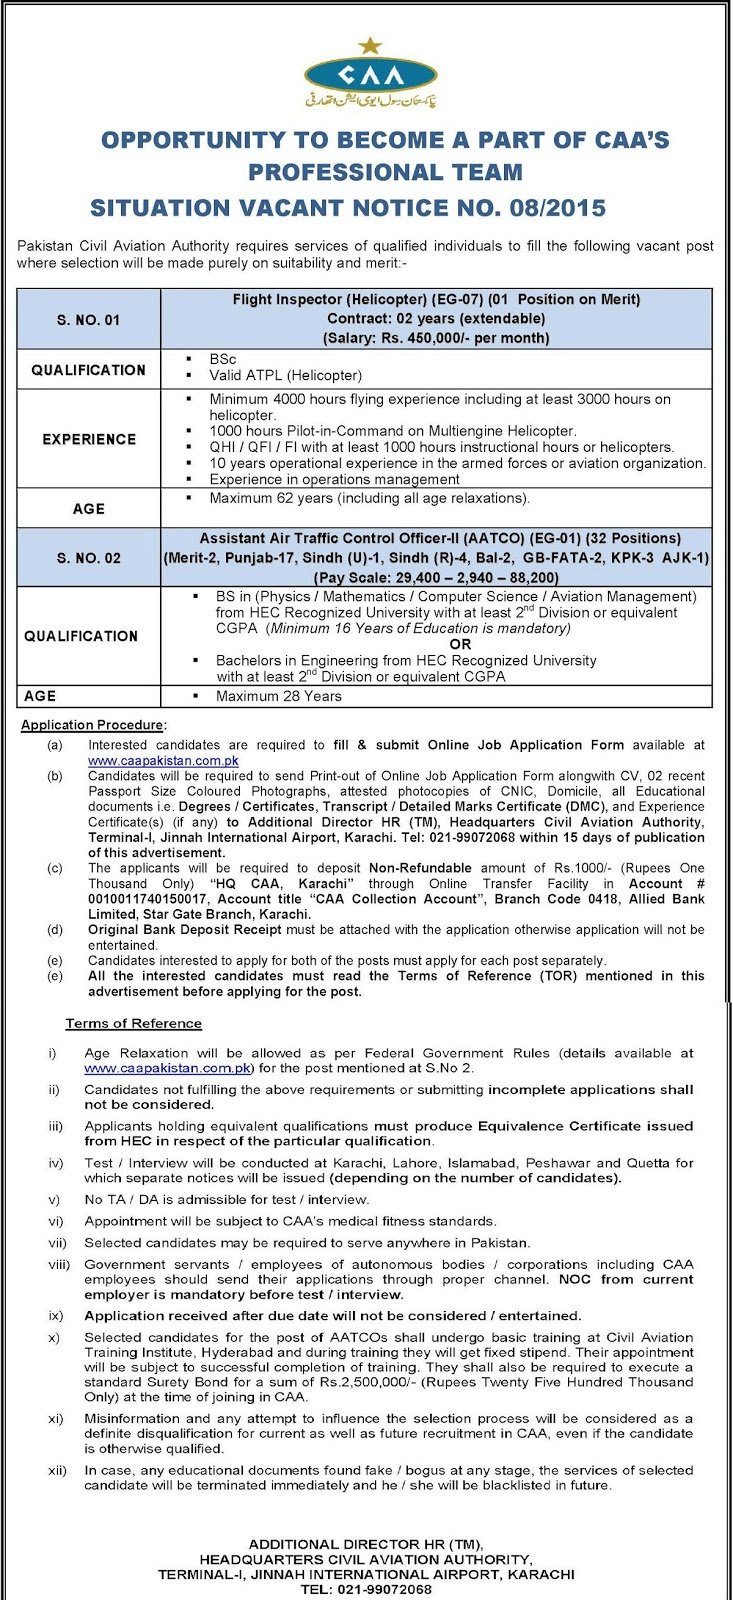 Assistant Air Traffic Control Officer Jobs in CAA Pakistan